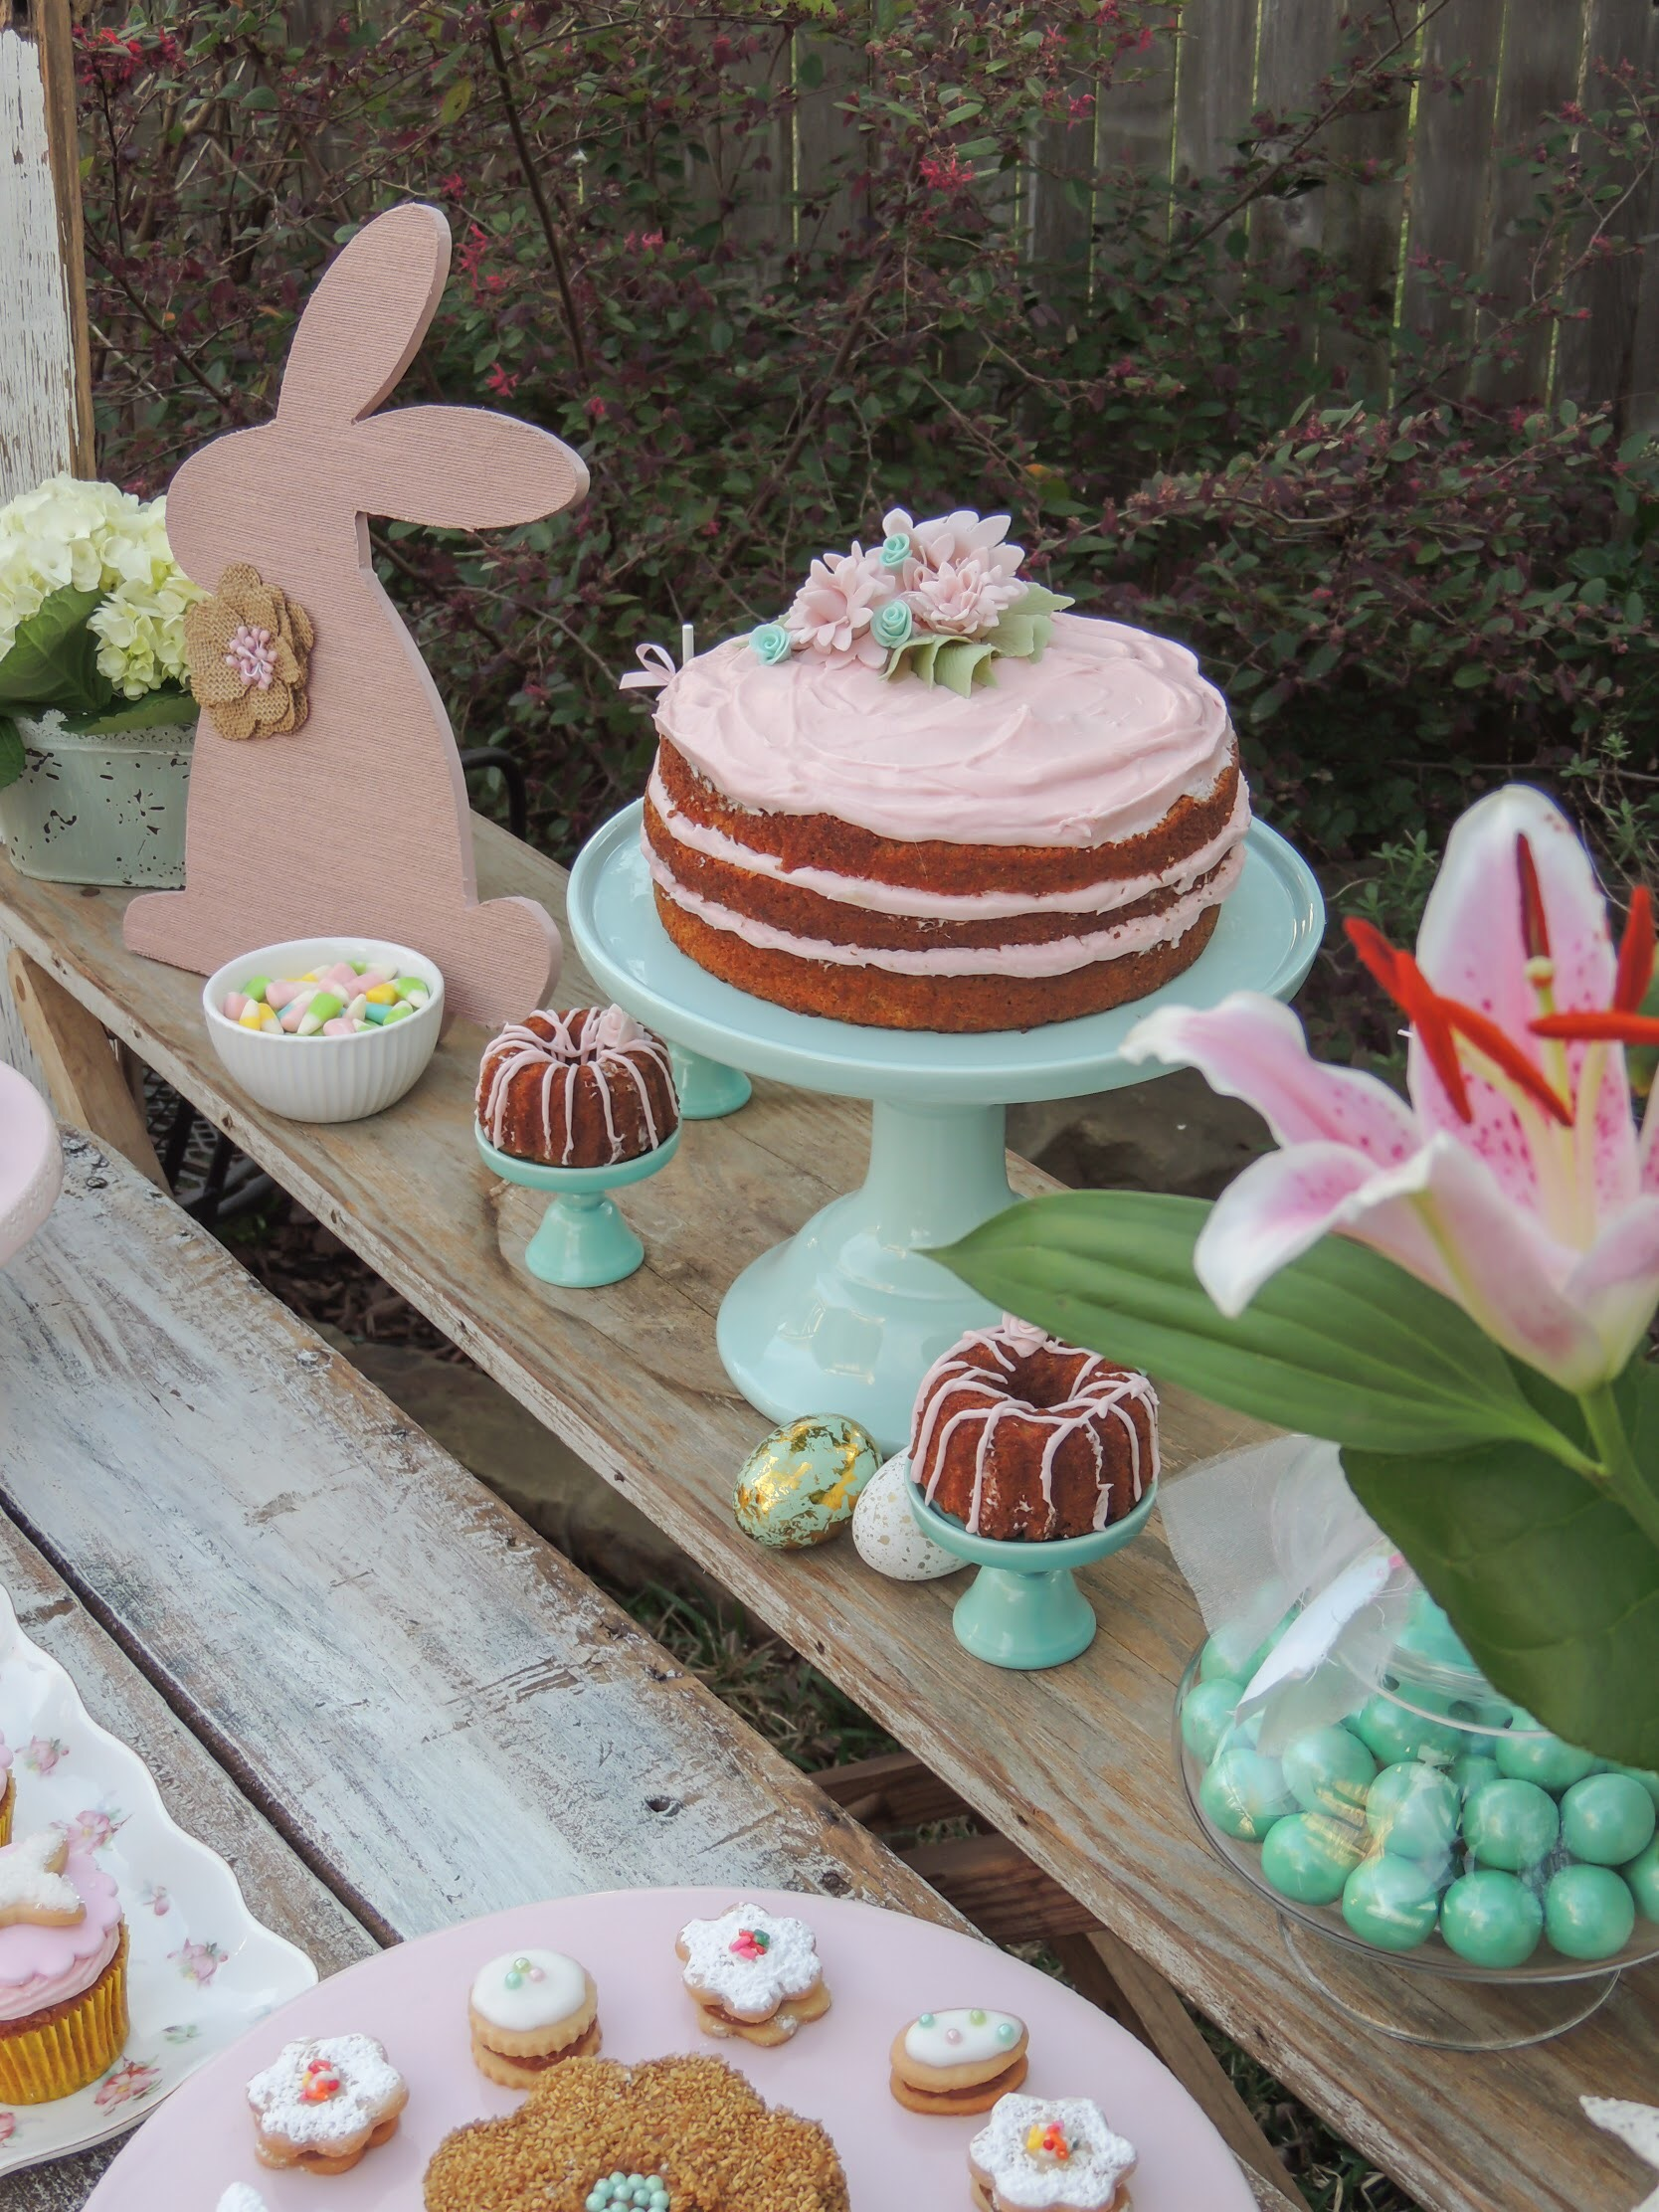 Sweet Easter baking ideas including a naked frosted carrot cake and mini bundt cakes. Styling by Austin Texas Party Planer Mint Event Design www.minteventdesign.com #eastertable #easterdecor #easterparty #partyideas #easterideas #shabbychic